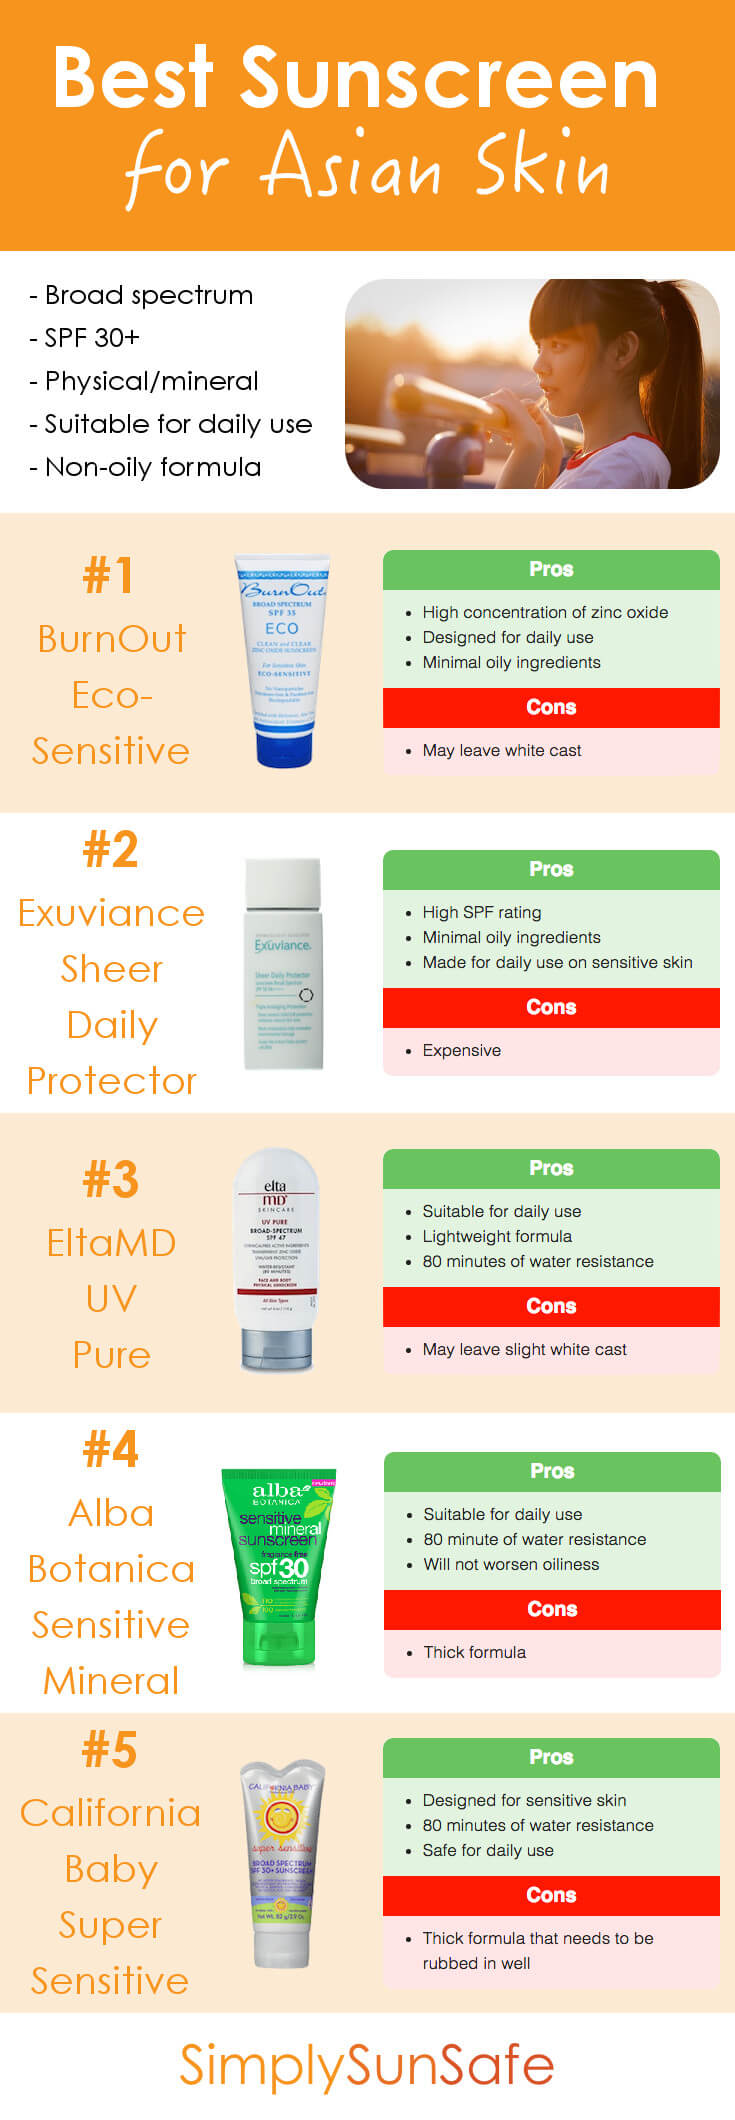 Best Sunscreen for Asian Skin Pinterest